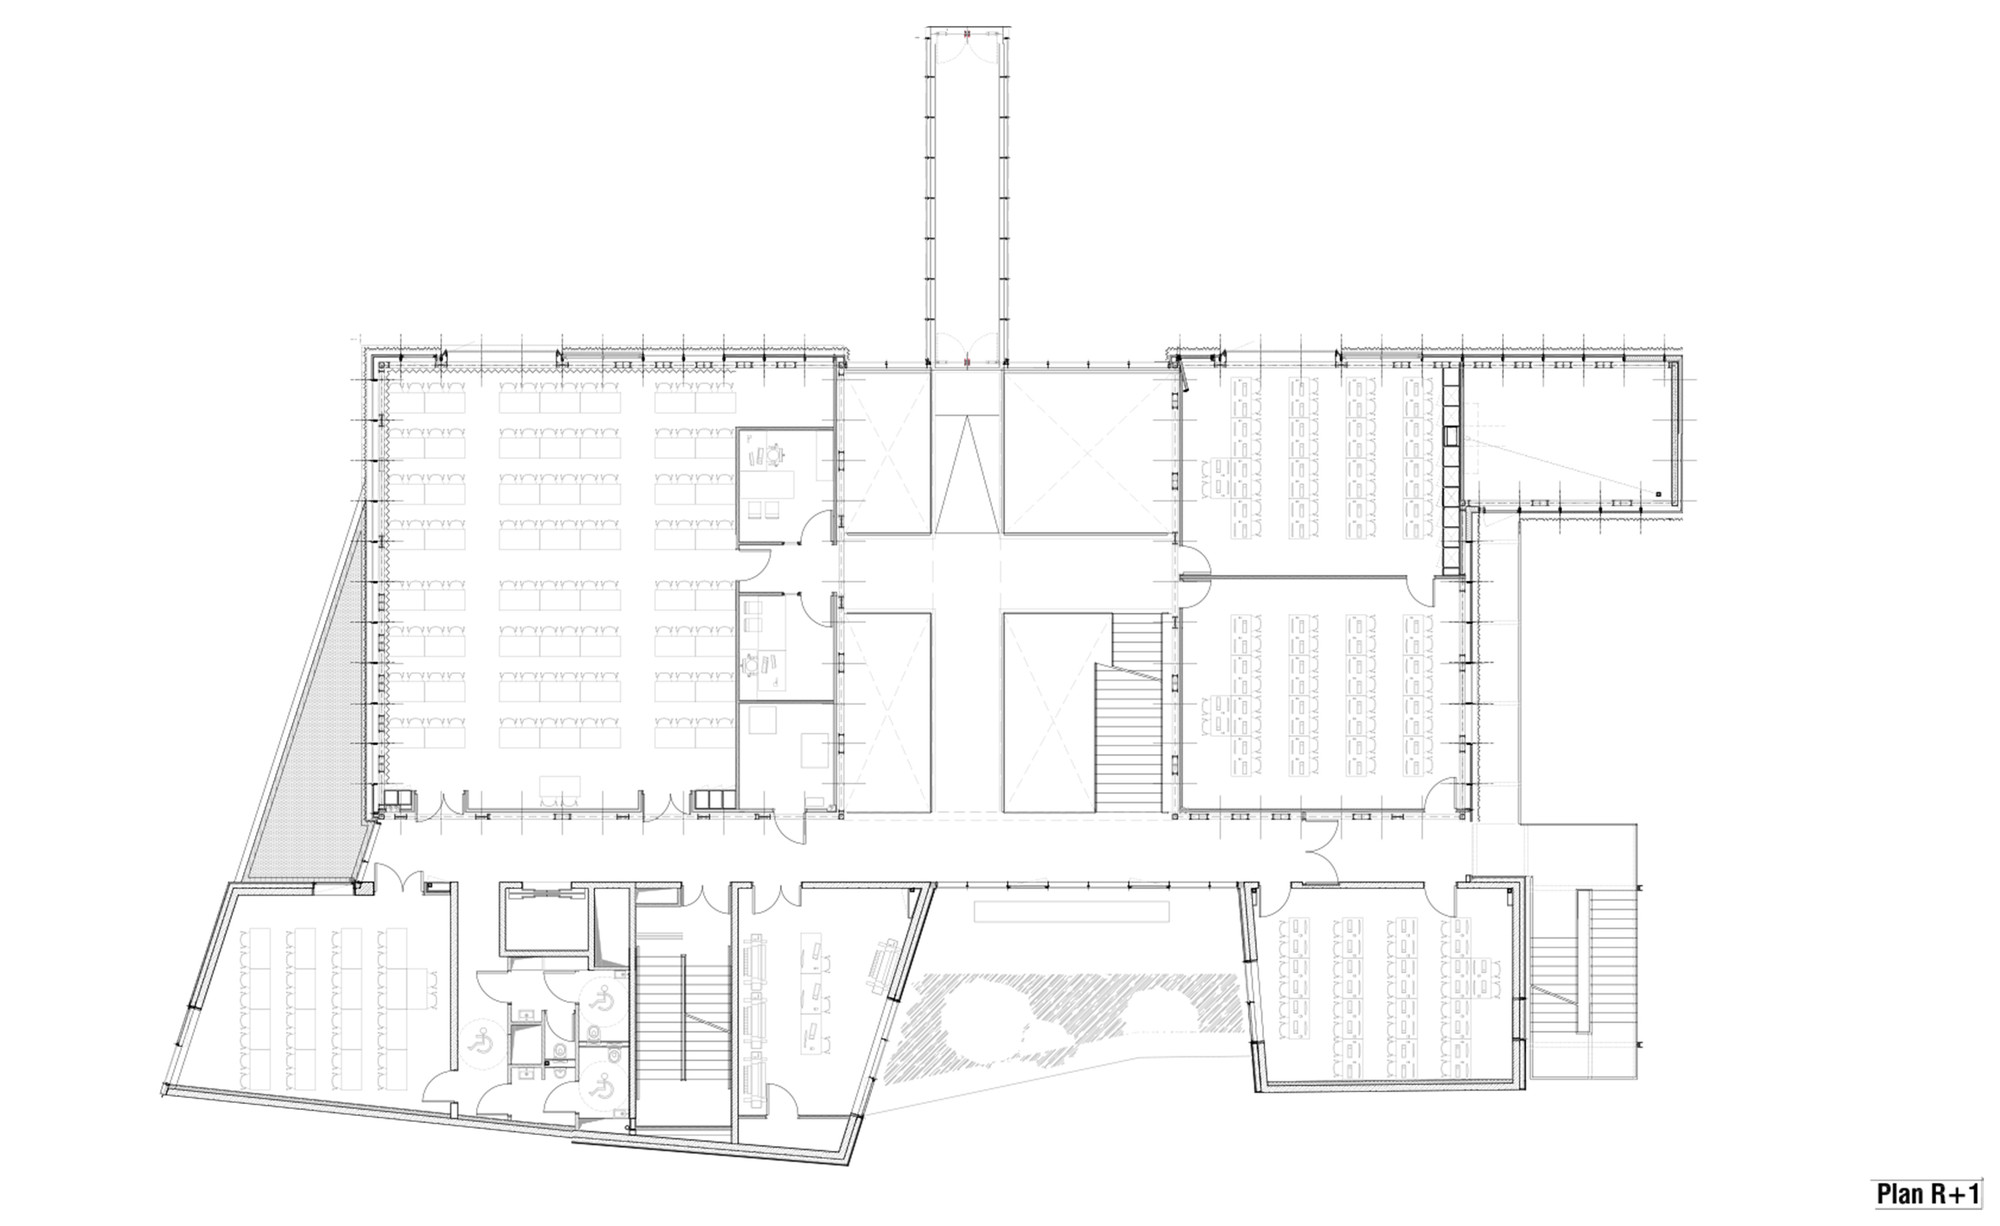 gallery of strasbourg school of architecture / marc mimram - 8